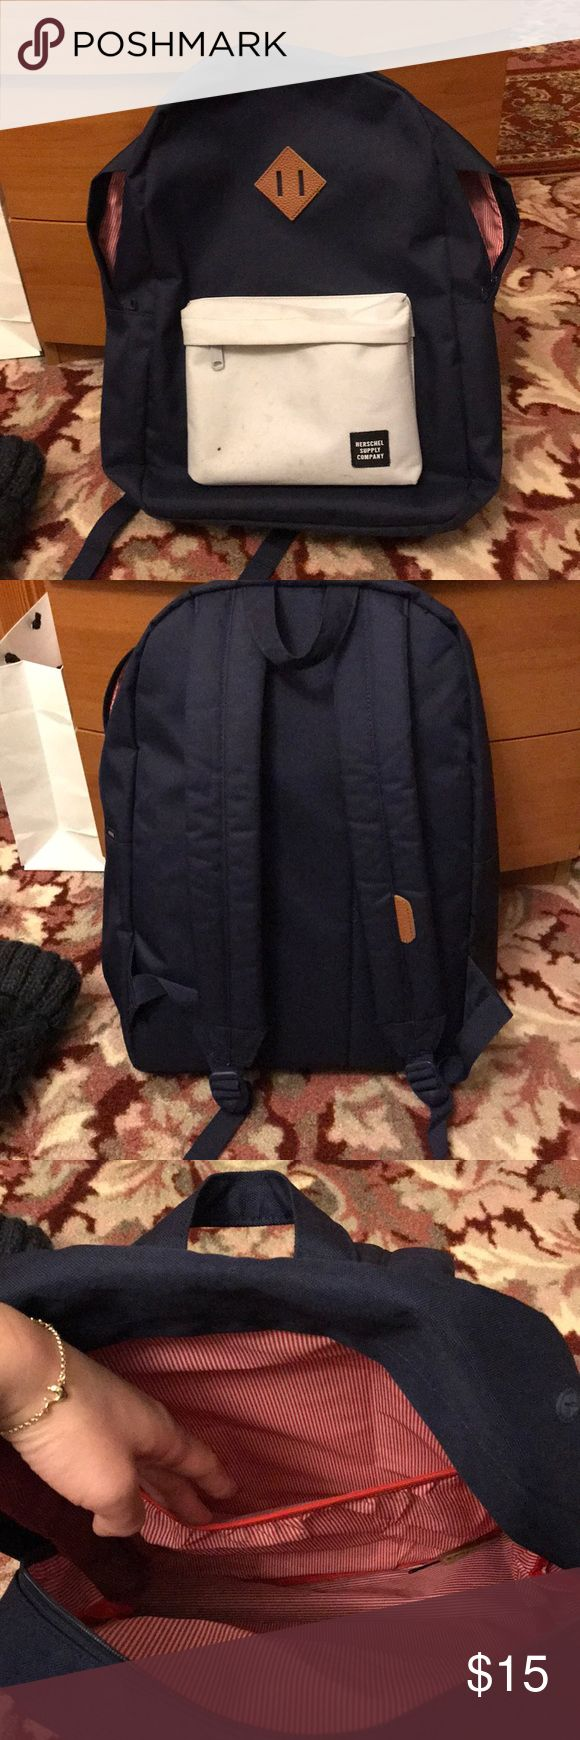 Herschel bookbag Used. Some dirt marks on the front light blue pouch as indicated in pictures. Other than that the bag is in great condition. No rips or tears. Has a laptop compartment- fits a 15 inch laptop Herschel Supply Company Bags Backpacks